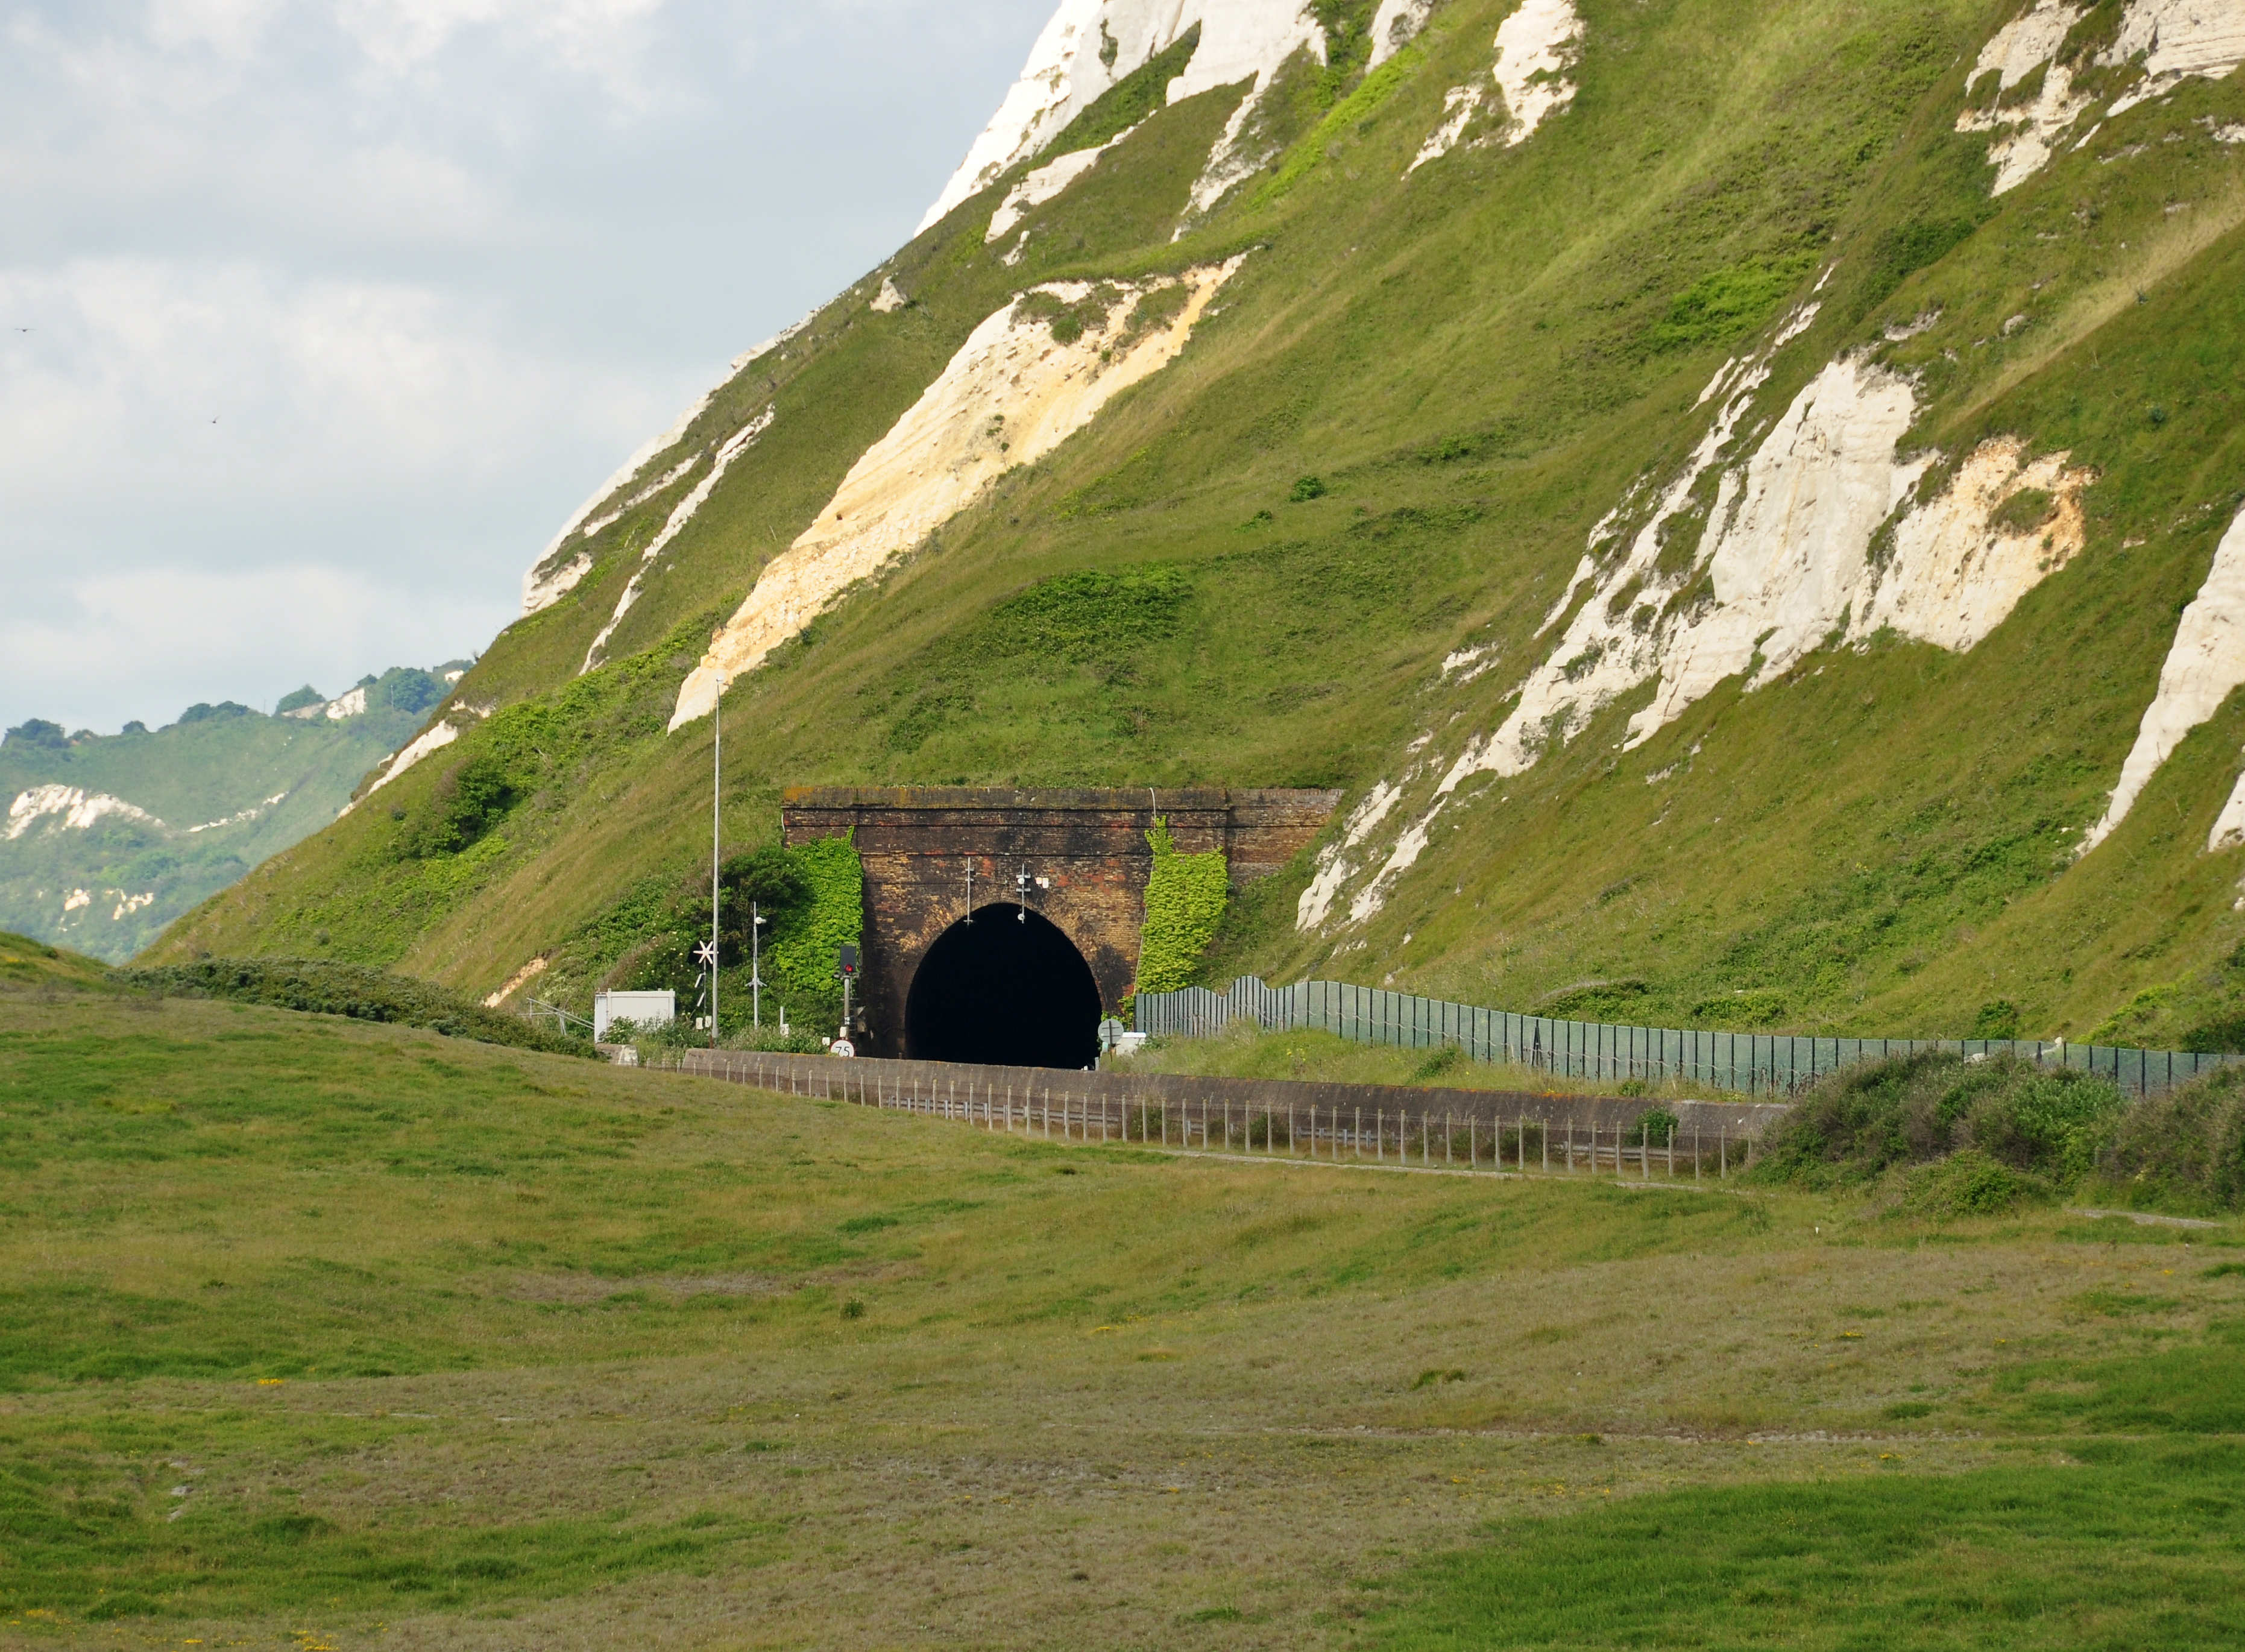 The White Cliffs above Samphire Hoe, near Dover, Kent. The entrance to the tunnel under Abbot's Cliff is visible. Photo taken on June 18, 2012.